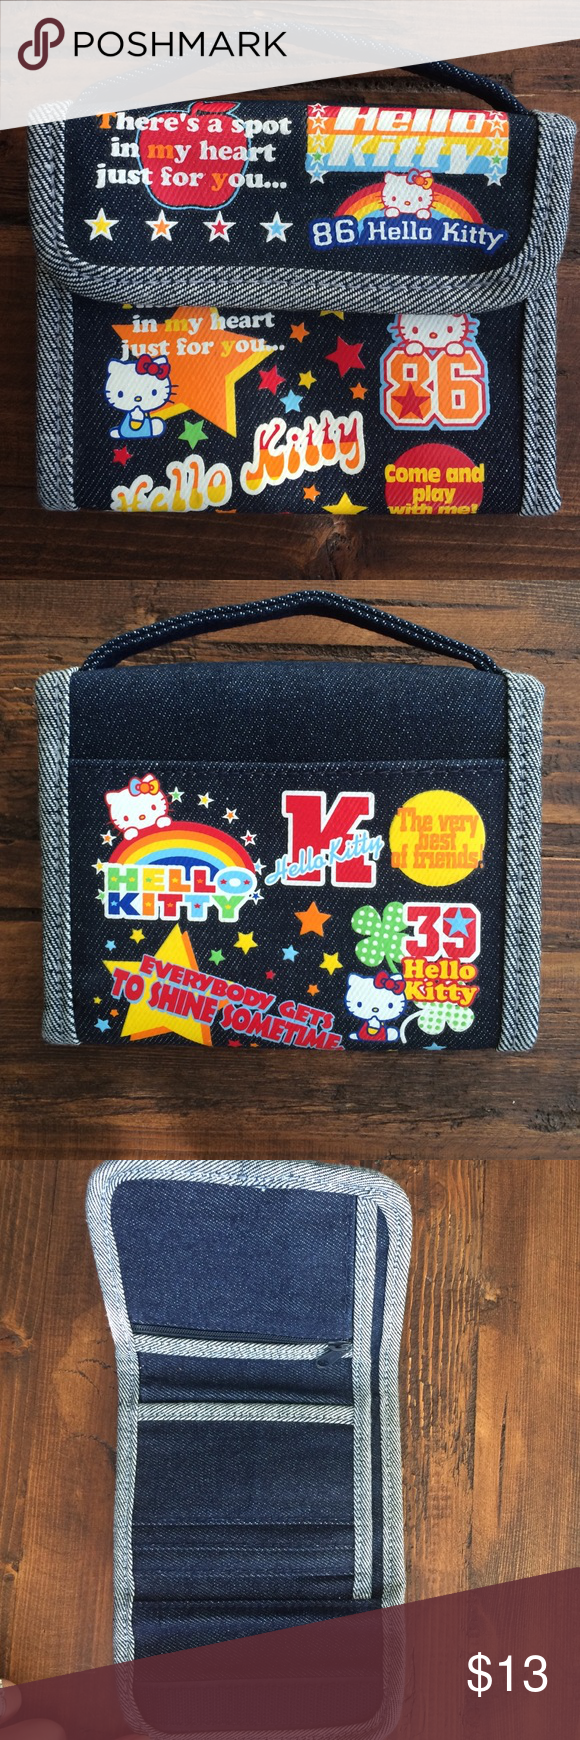 "Hello Kitty Denim Wallet 💗Super cute denim HK wallet. Velcro closure -inside zipped change slot. Room for credit cards/ID 💳 and 💵. Has a handle so it can be carried as a mini purse. Collected - never used!  Dimensions : 5""H(w/handle) 5""L - 10.75""L when open. Sanrio Bags Wallets"